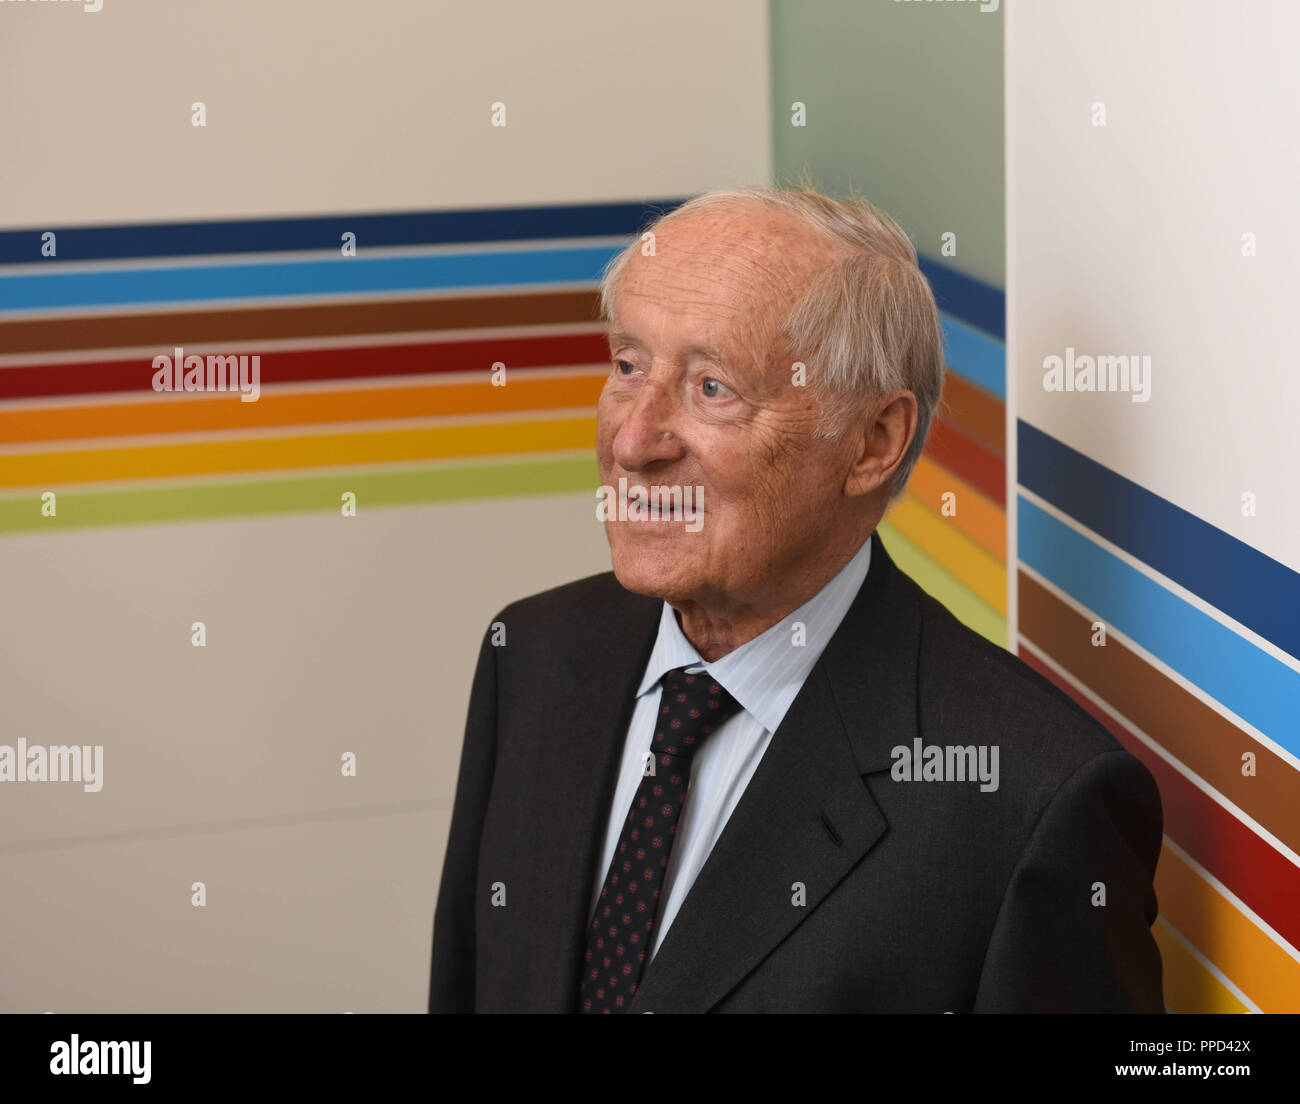 Eberhard von Kuenheim, Honorary Chairman of the Board of Trustees of the Eberhard von Kuenheim Foundation of BMW AG, pictured in the corridors of the foundation. - Stock Image